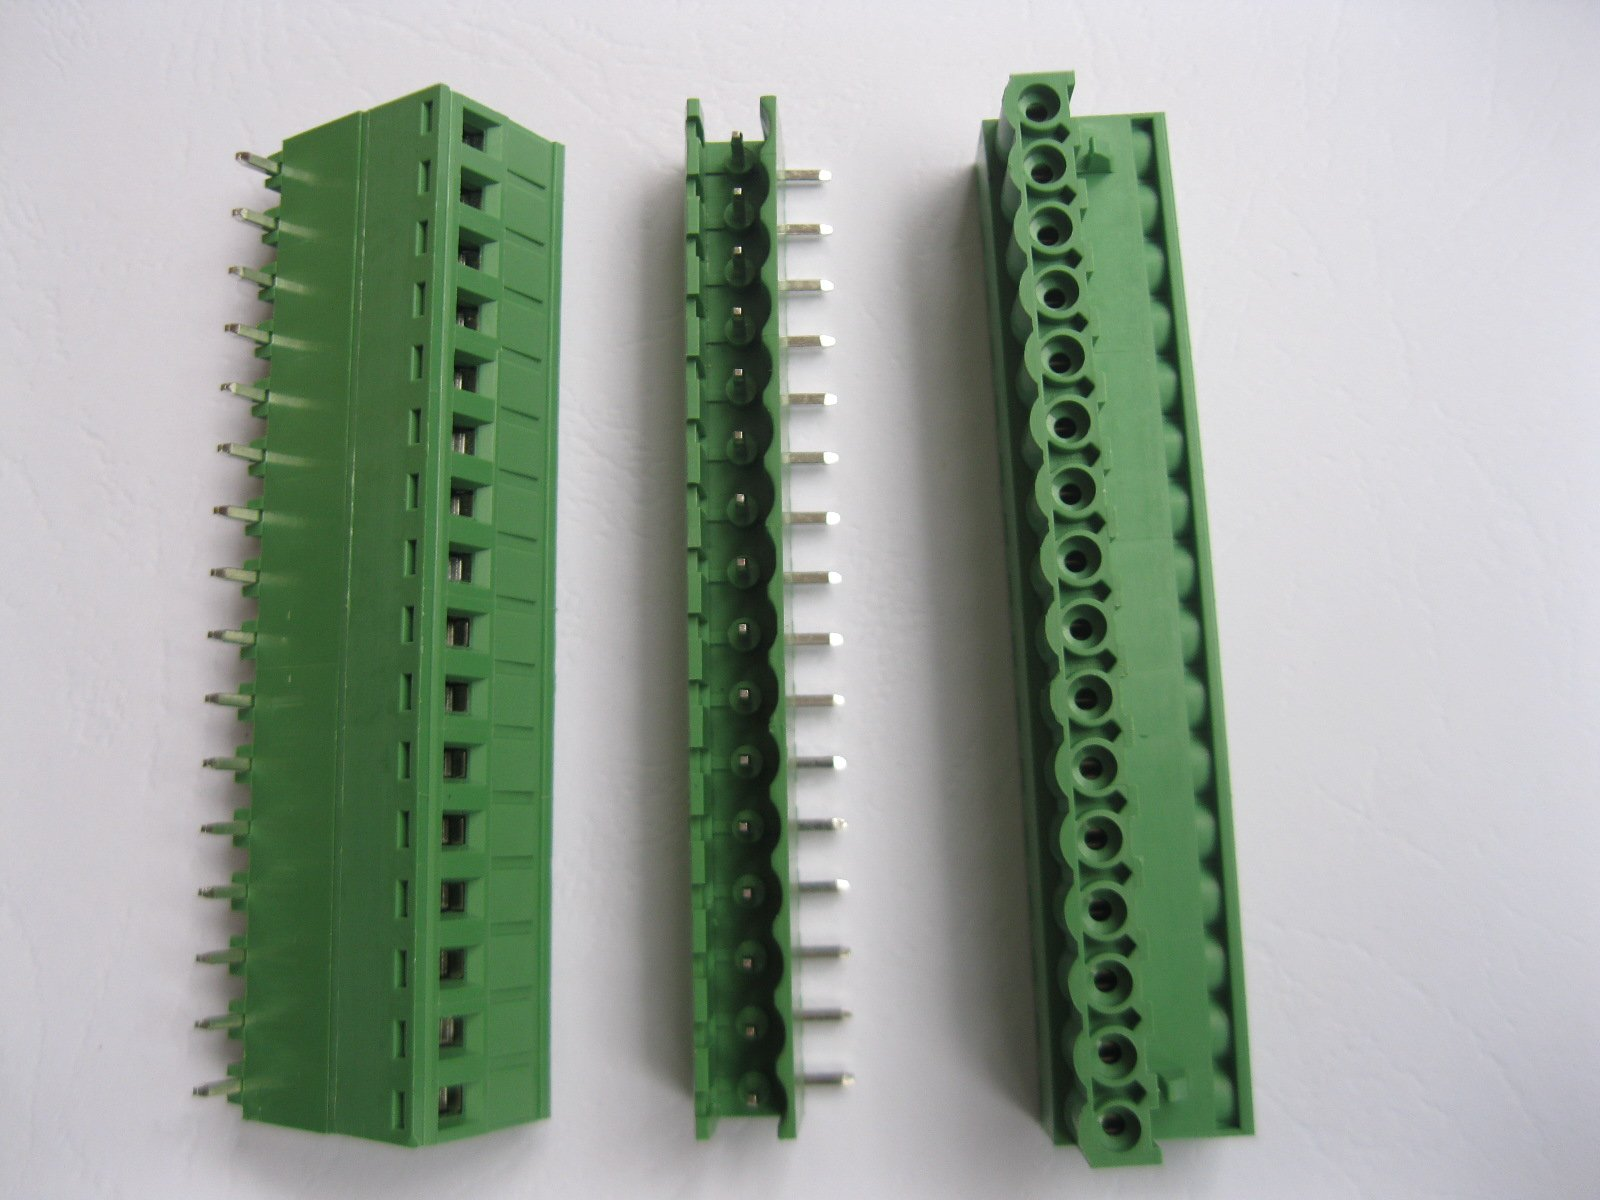 20 Pcs Angle 16 pin/way Pitch 5.08mm Screw Terminal Block Connector Green Color Pluggable Type With Angle pin